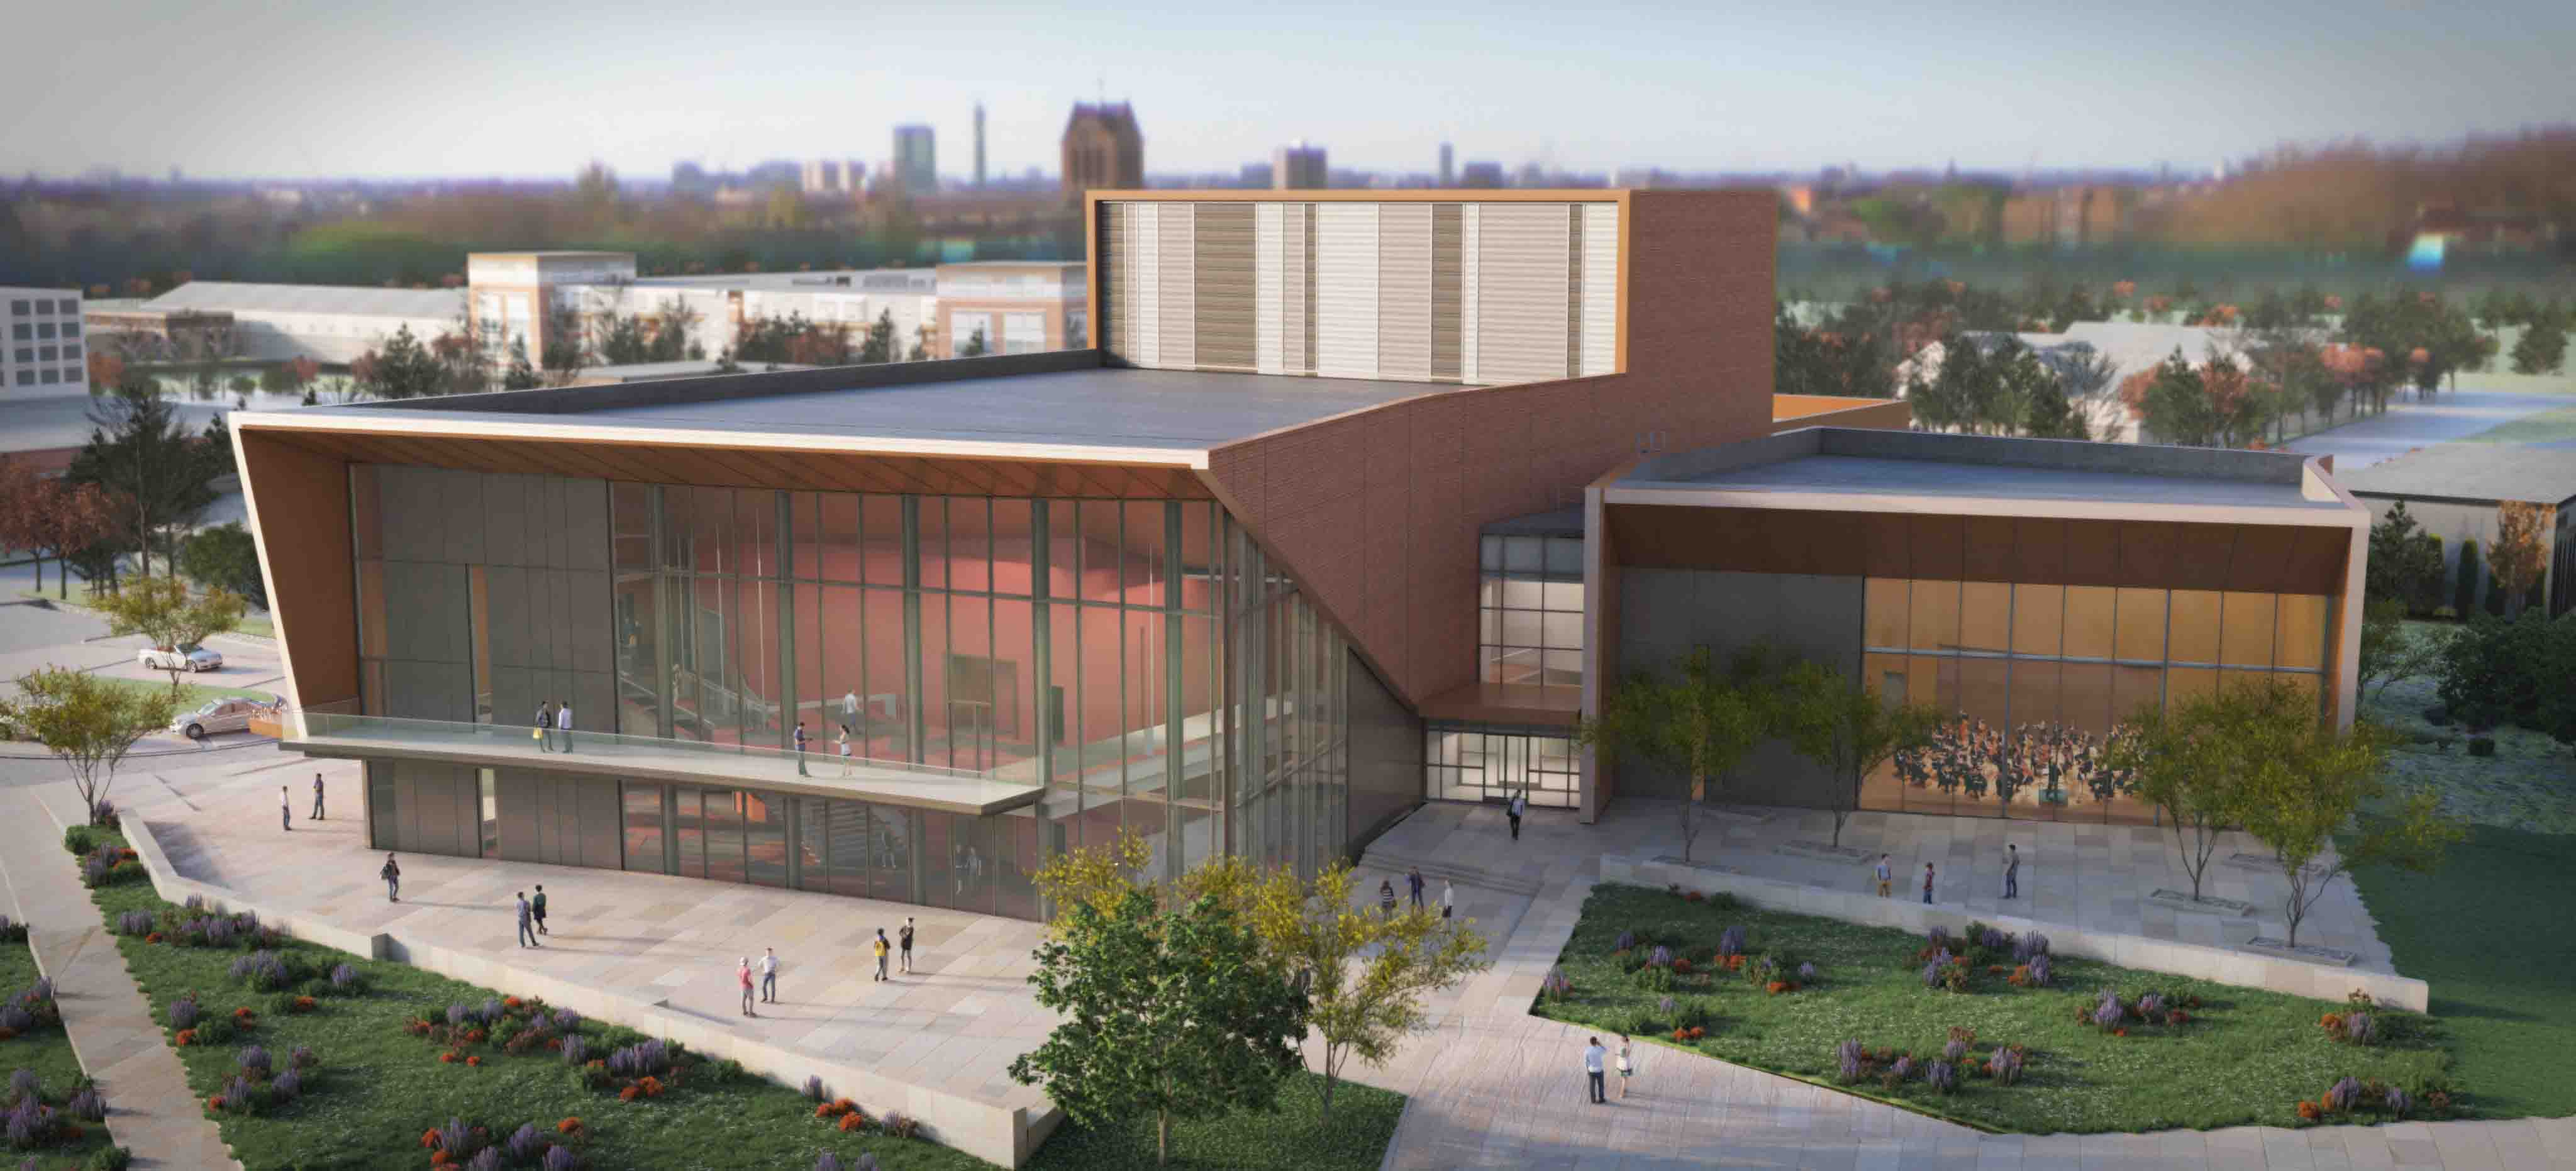 Gonzaga University <br/> Woldson Performing Arts Center